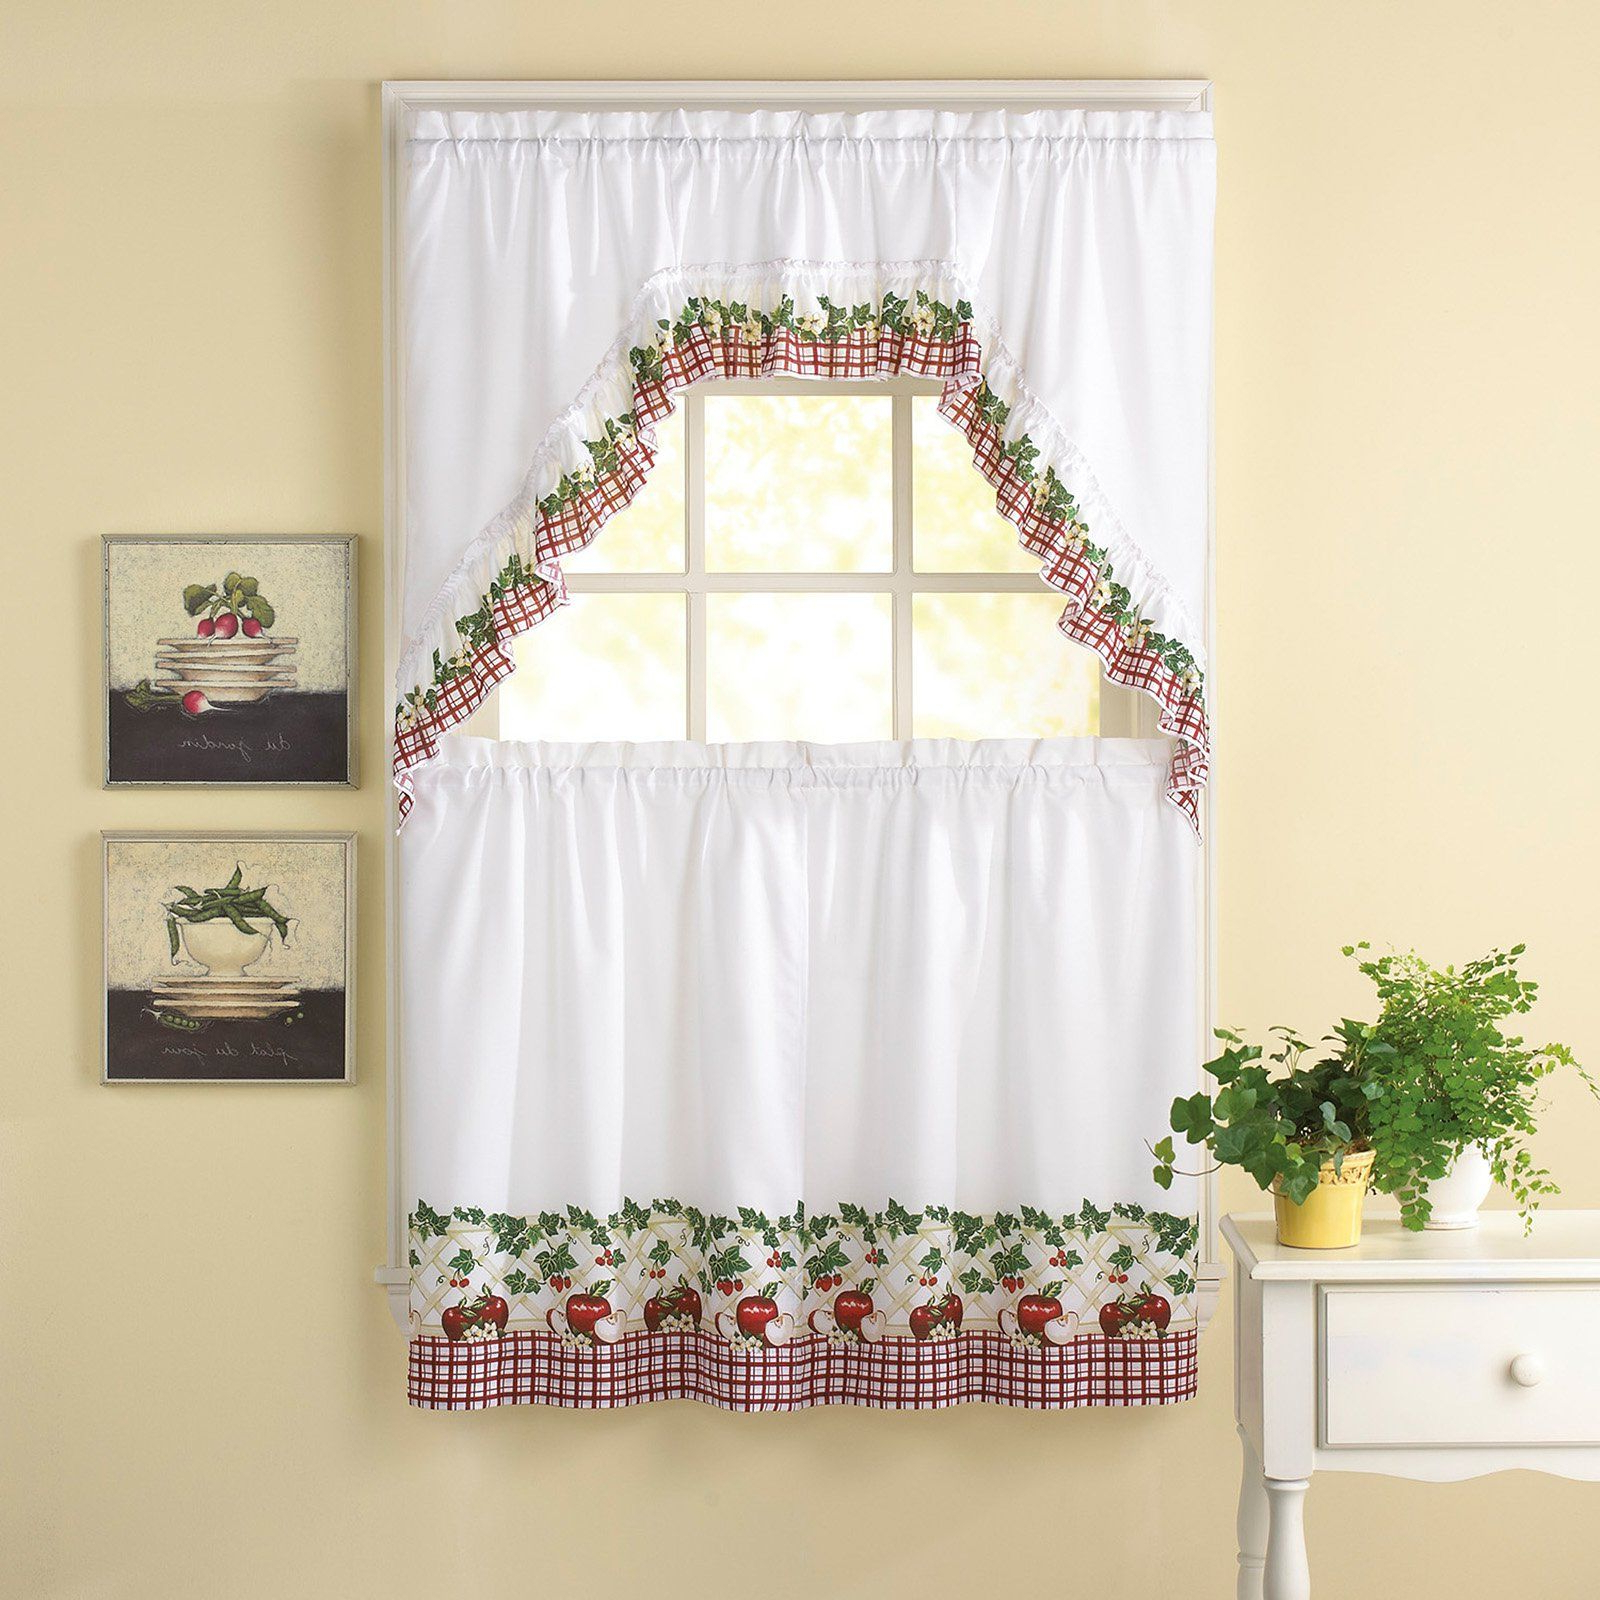 Traditional Tailored Tier And Swag Window Curtains Sets With Ornate Flower Garden Print Throughout Most Popular Chf Industries Apple Blossom 36 In (View 13 of 20)